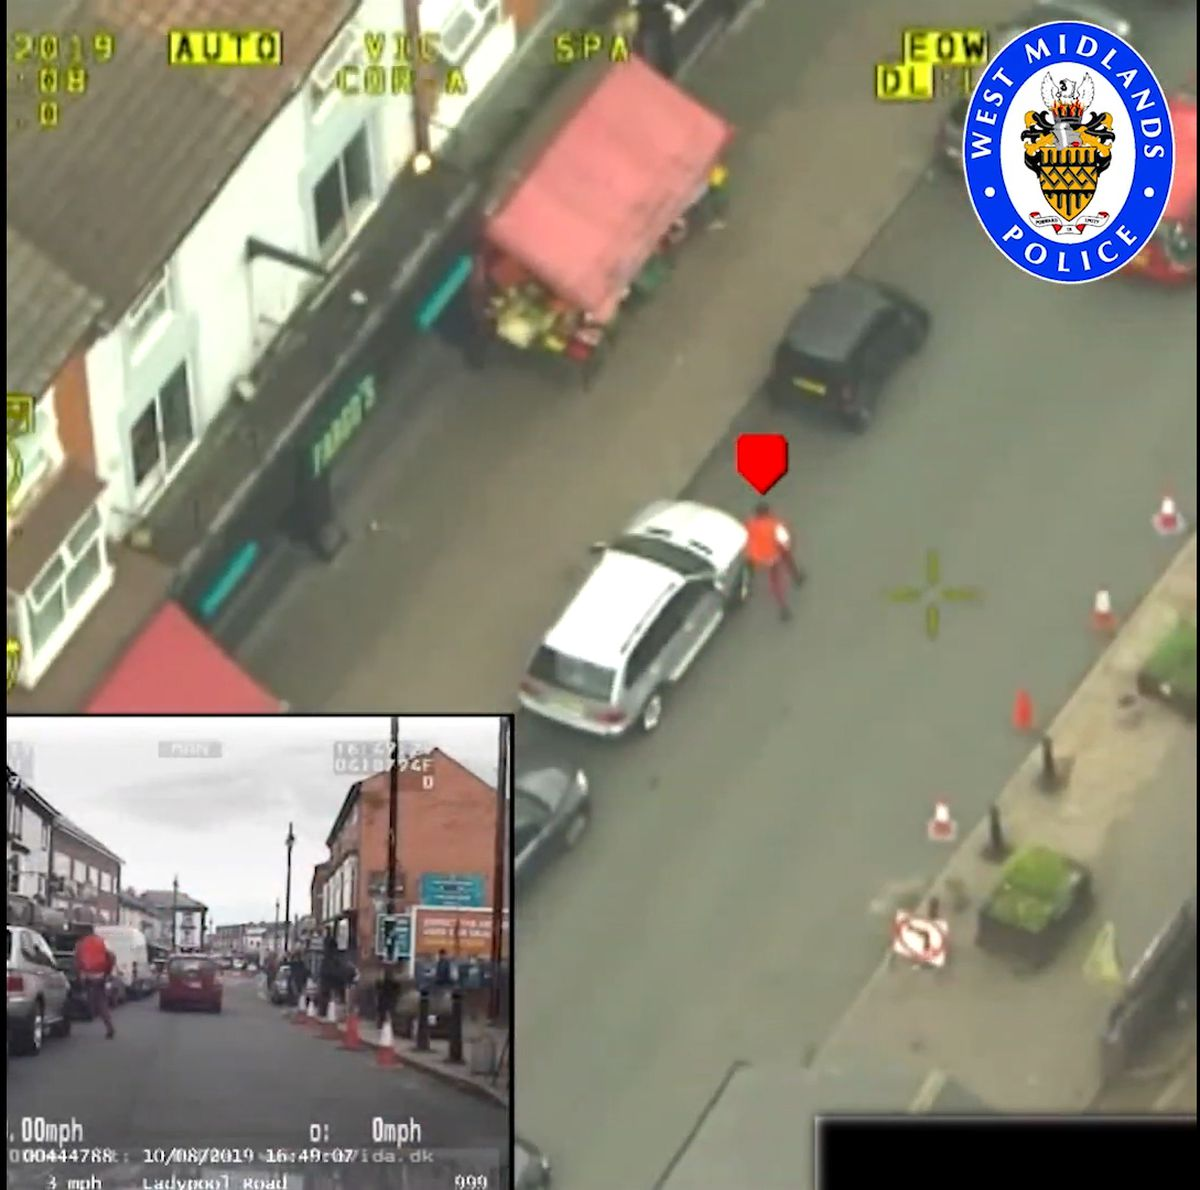 Hussain was tracked down by helicopter to Ladypool Road